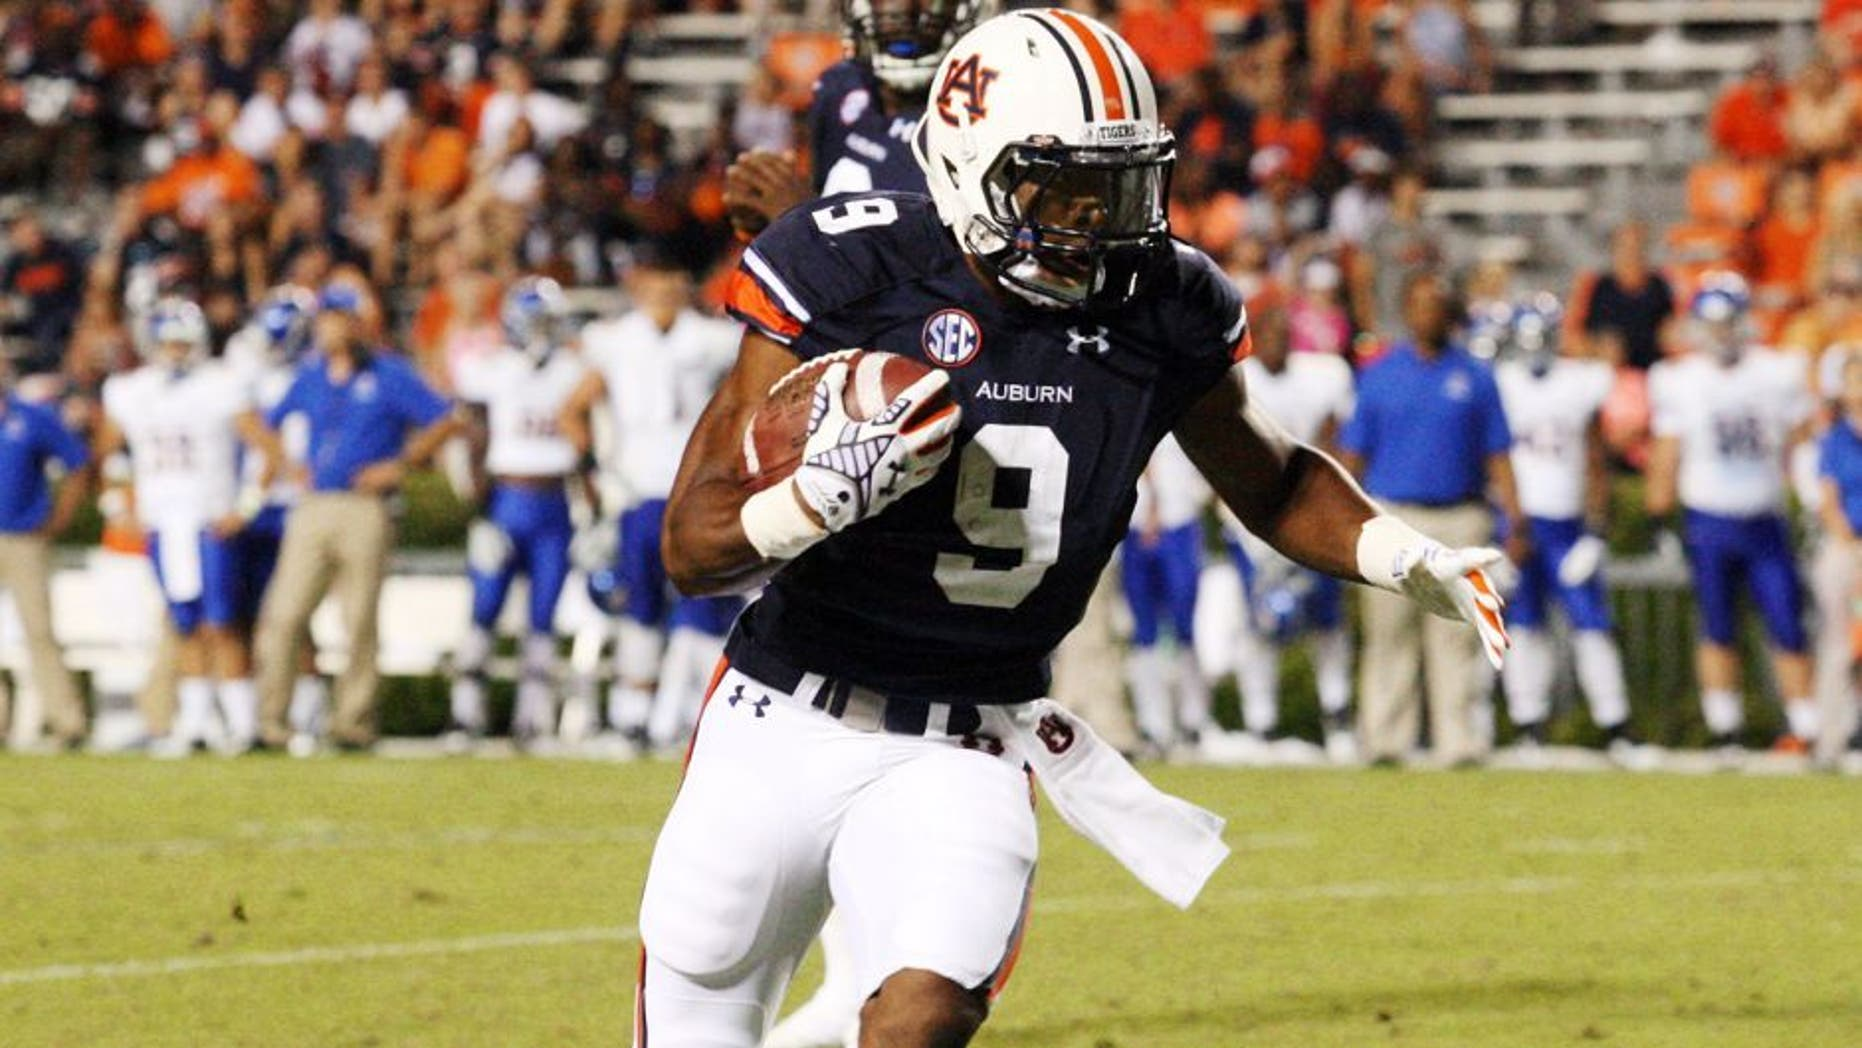 Sep 6, 2014; Auburn, AL, USA; Auburn Tigers running back Roc Thomas (9) carries against the San Jose State Spartans during the second half at Jordan Hare Stadium. The Tigers beat the Spartans 59-13. Mandatory Credit: John Reed-USA TODAY Sports